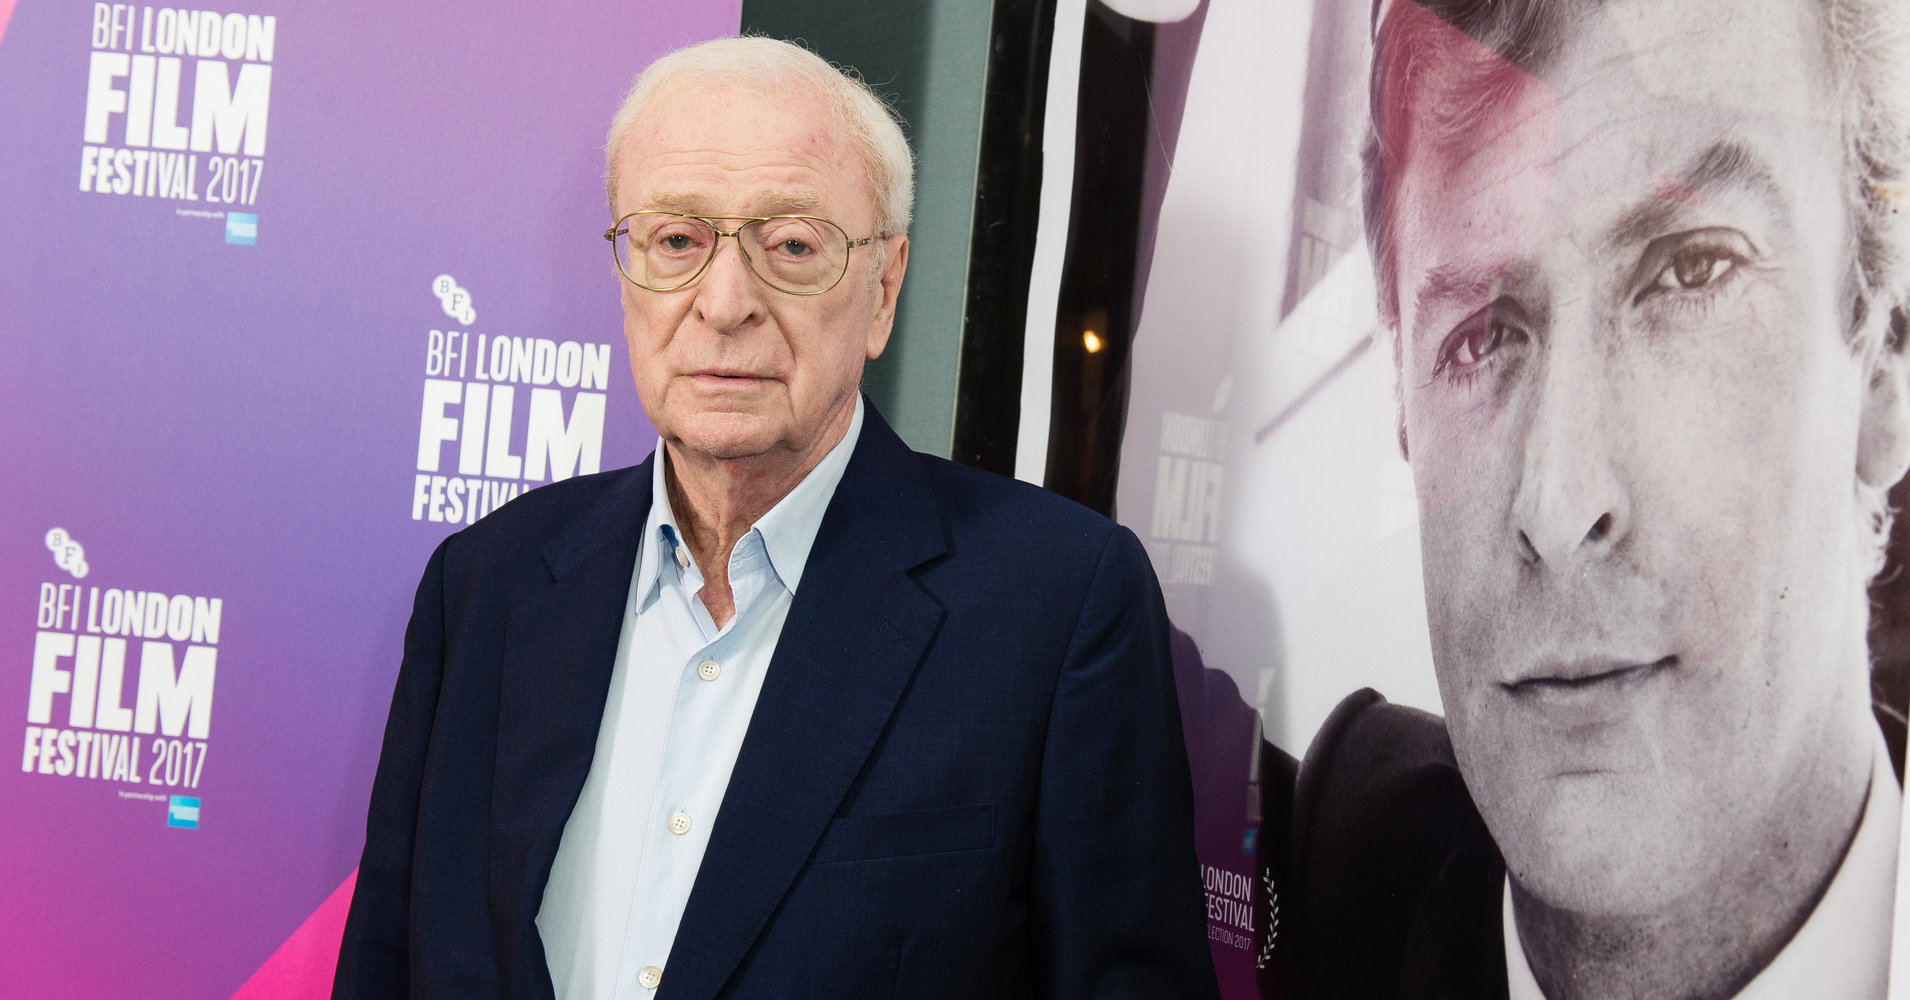 Michael Caine Says He Won't Work With Woody Allen Again